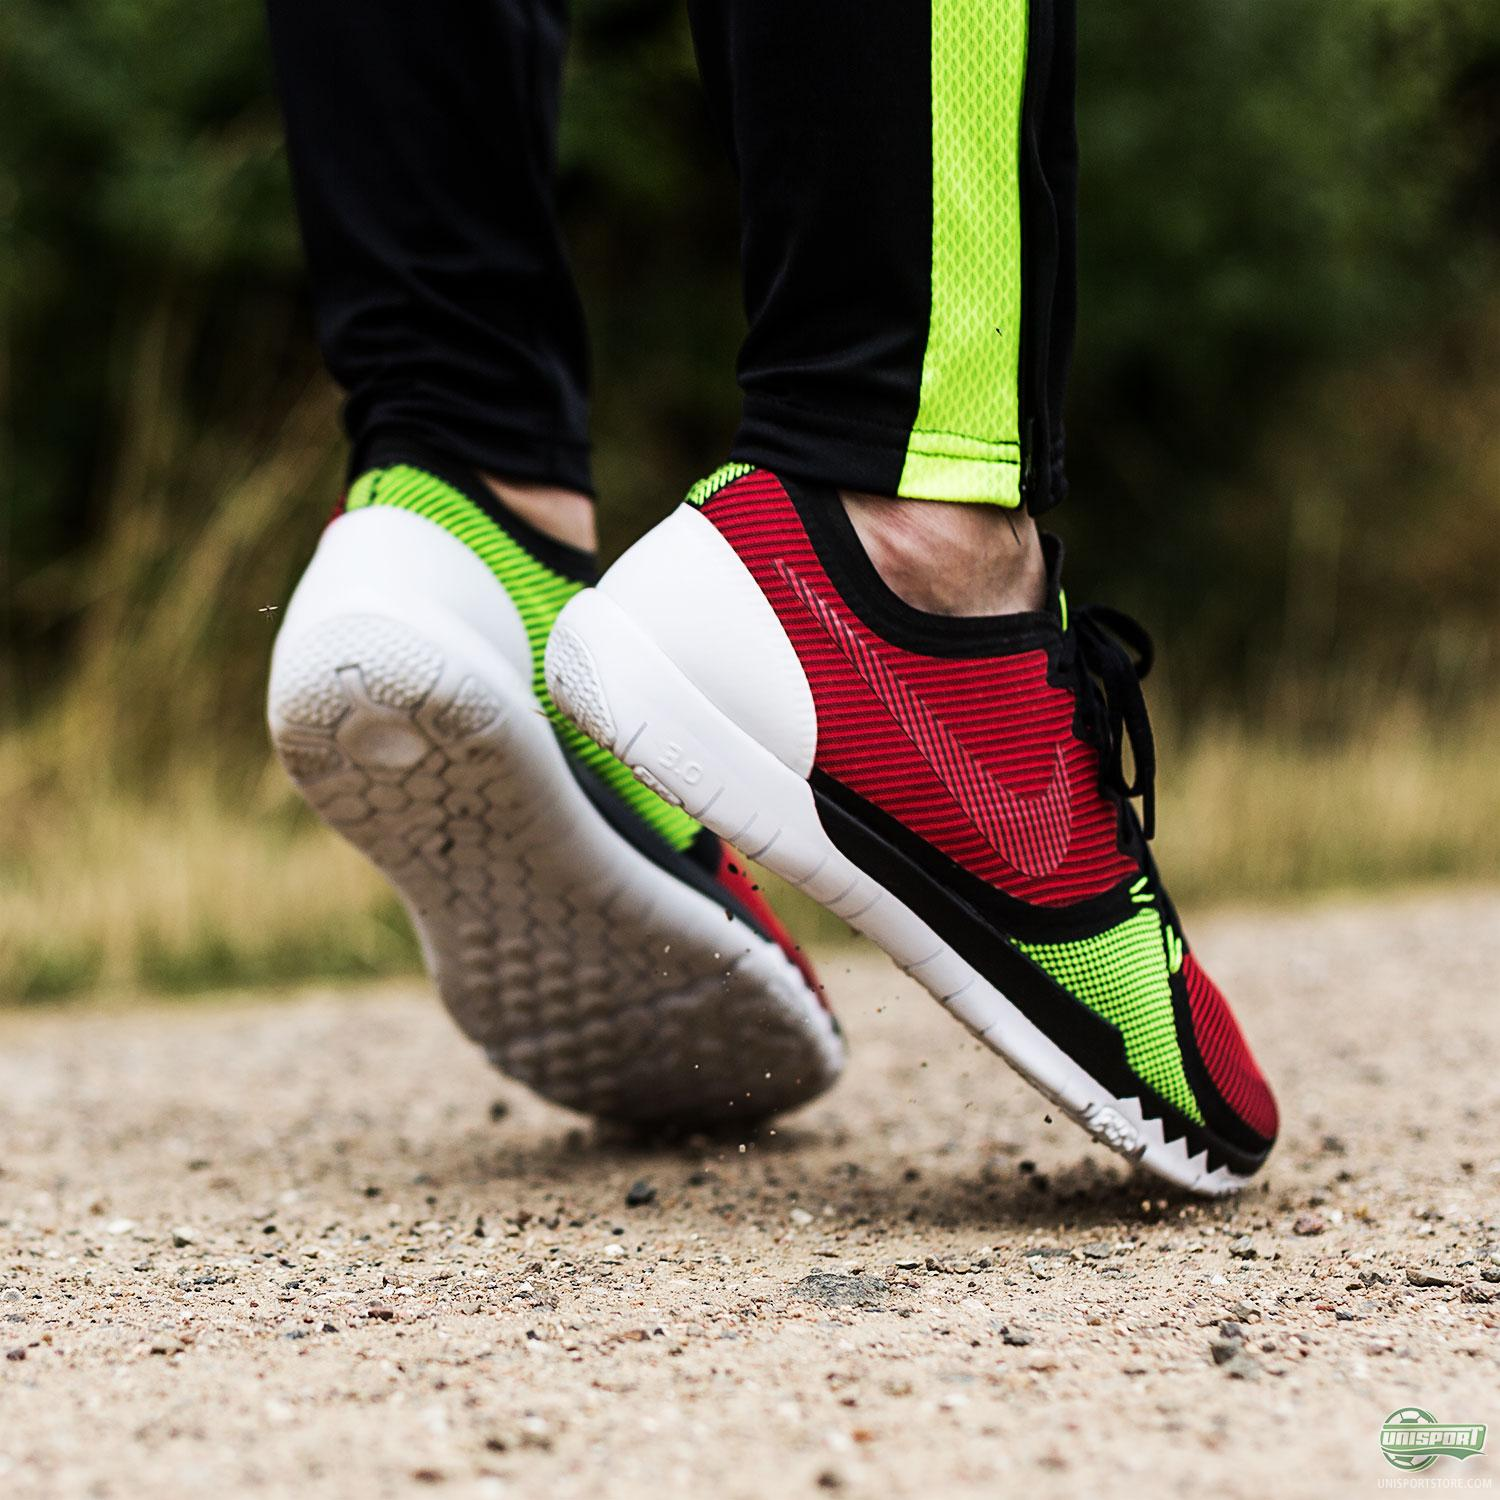 Train with complete confidence in the Nike Free Trainer 3.0 V4